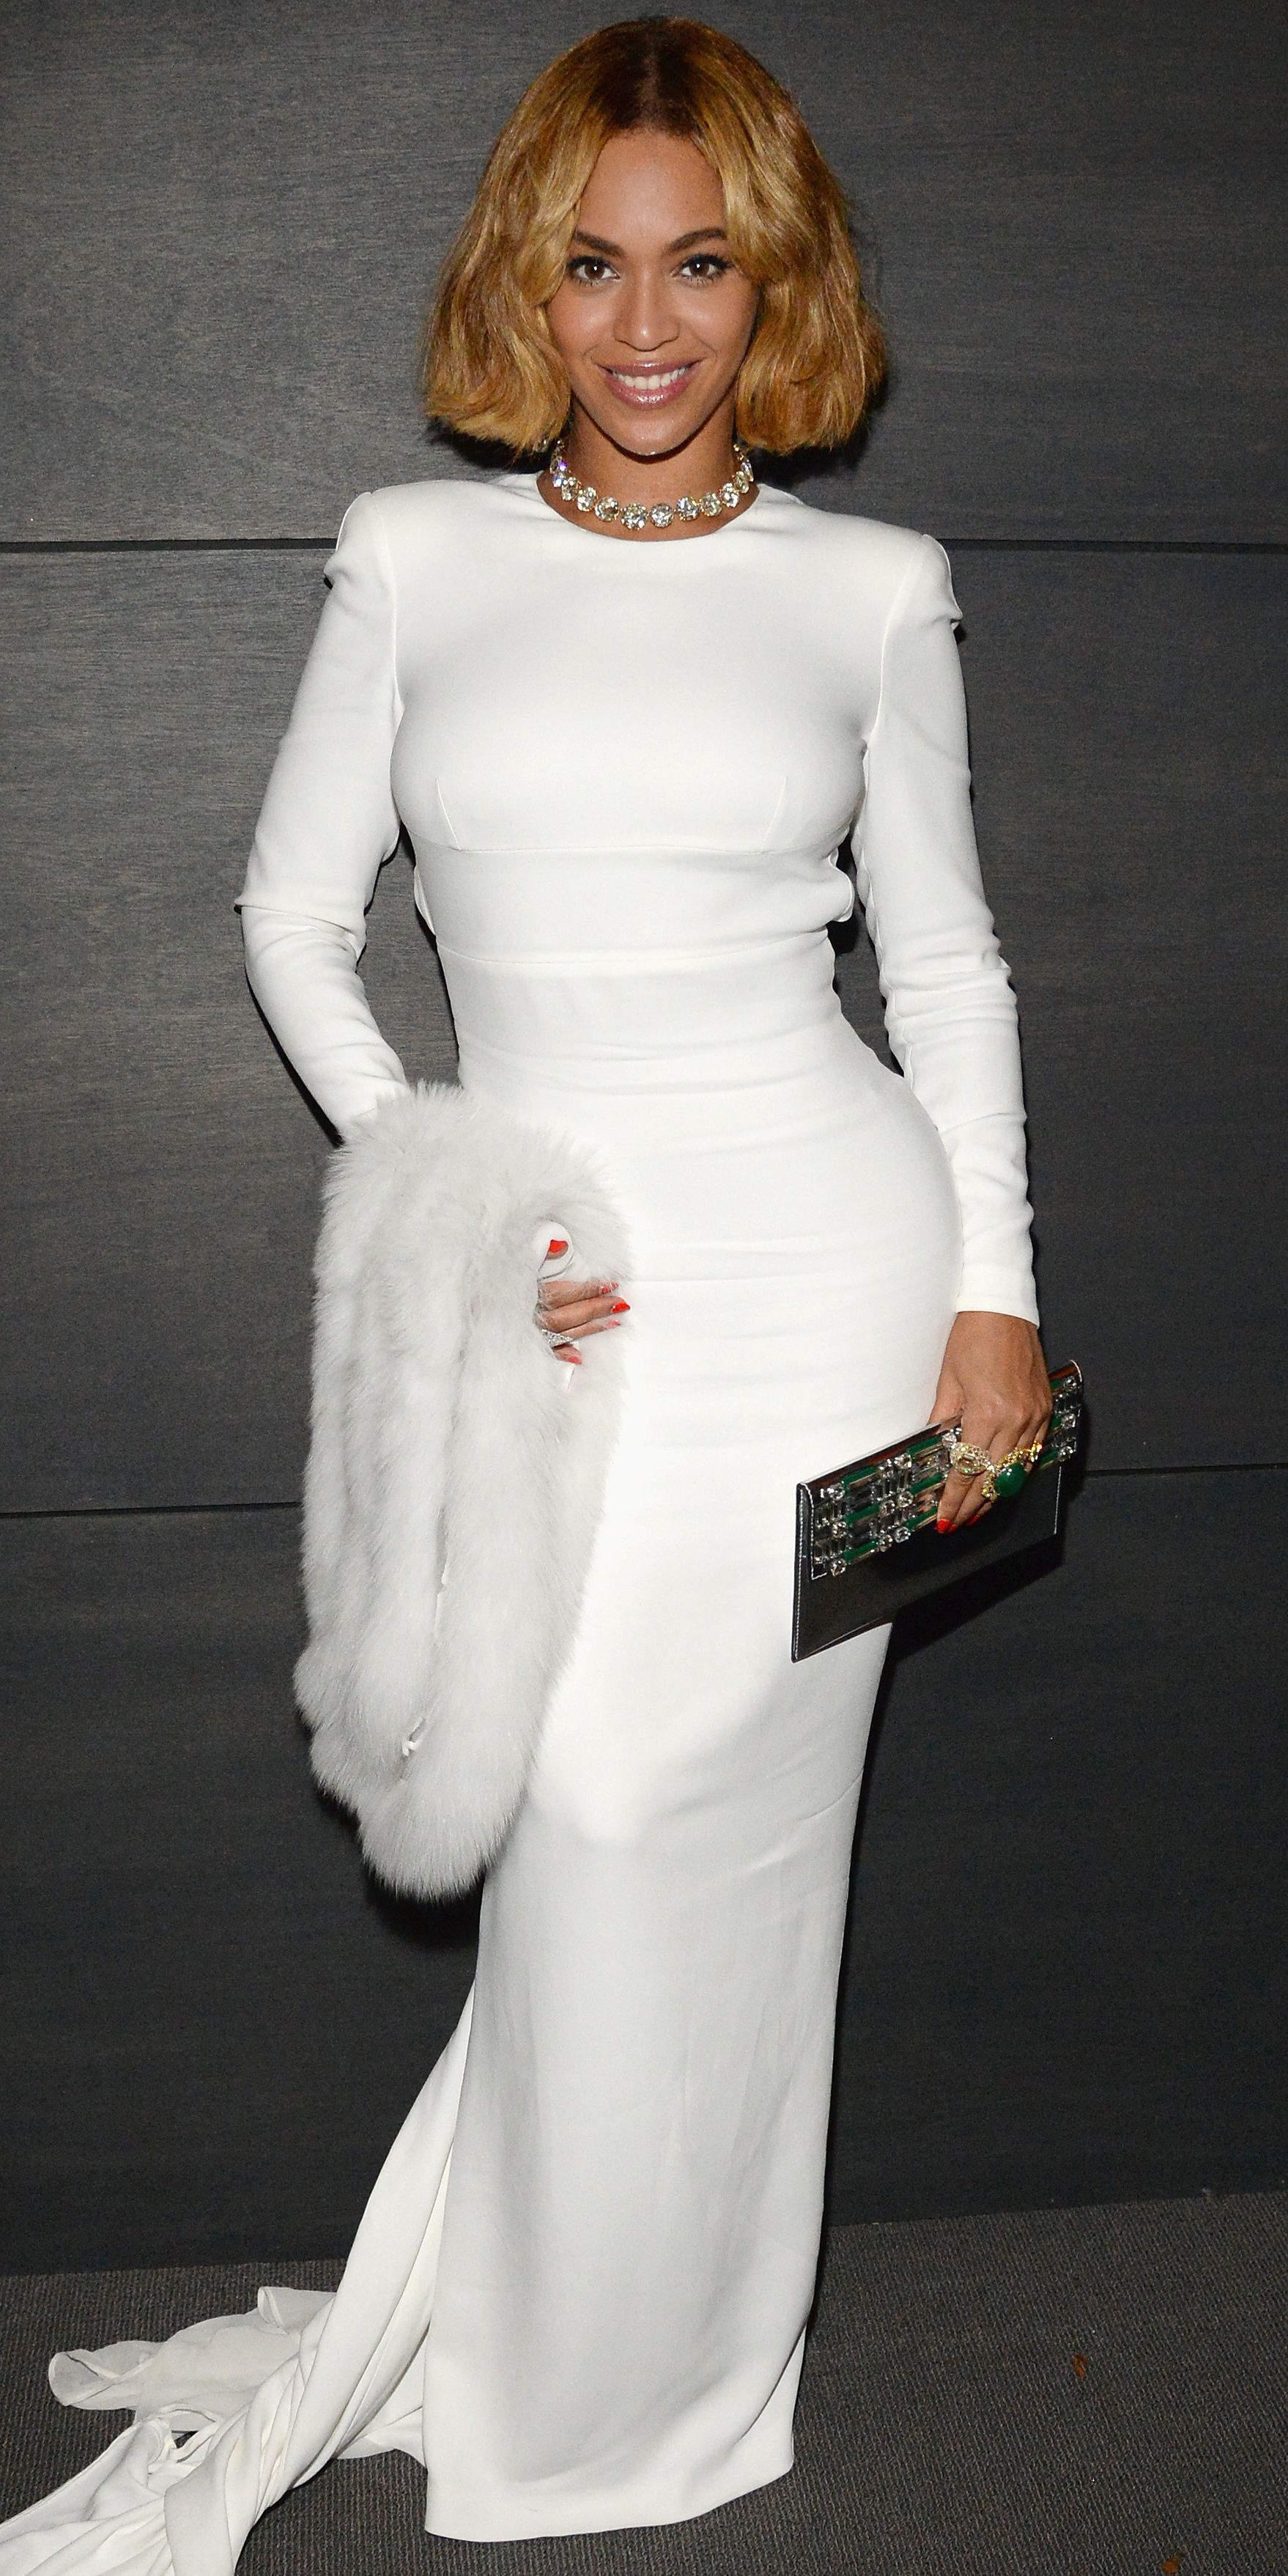 5990ed0d1c70 12 Times Beyonce Dressed Like an Actual Bride - 2015 Oscars Party from  InStyle.com